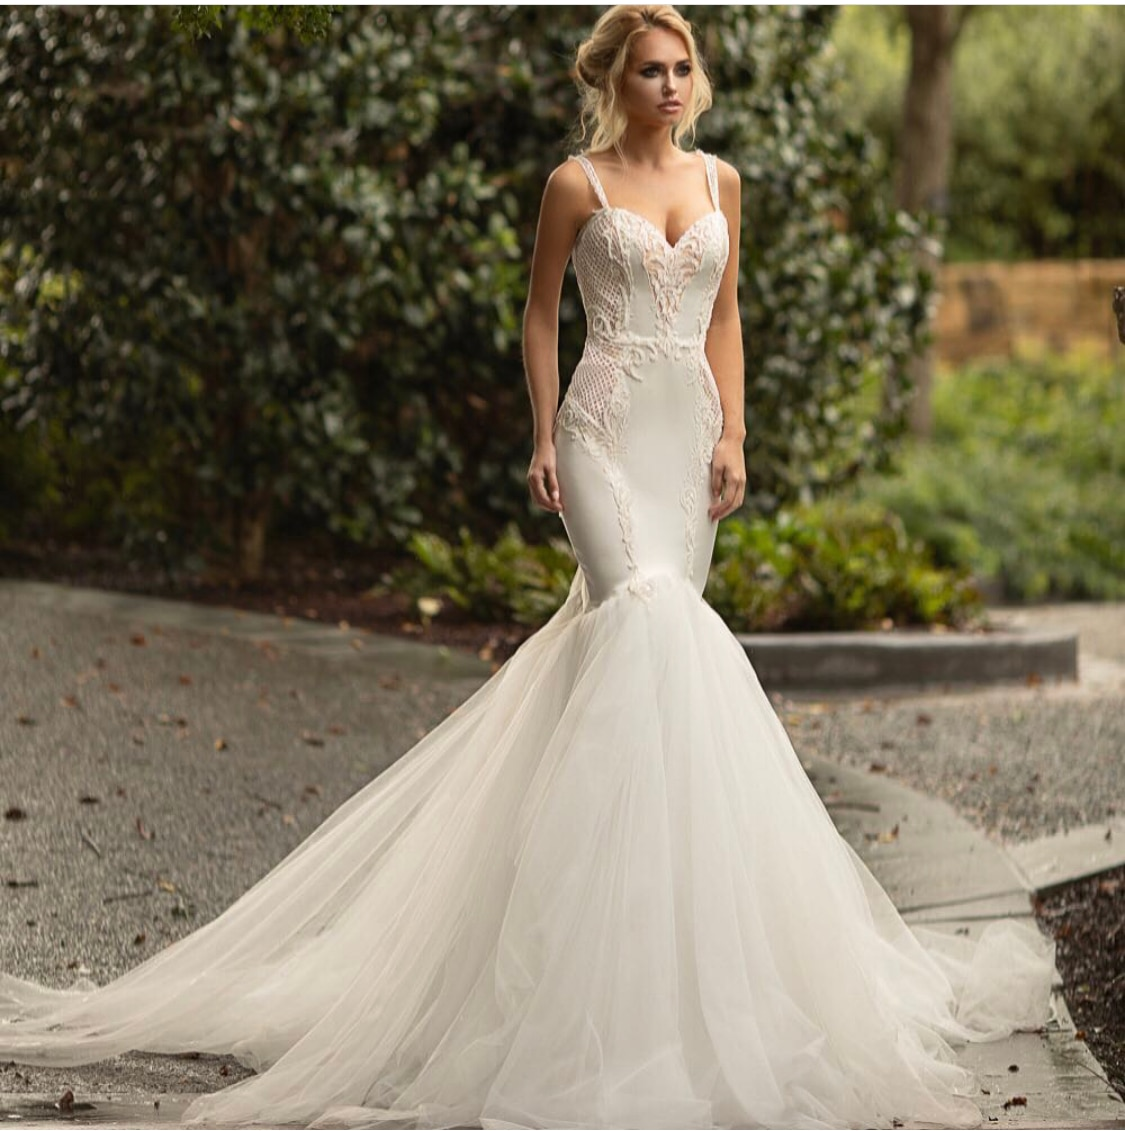 Mermaid Wedding Dress 2021 Sweetheart Spaghetti Straps Lace Embroidery Backless Tulle Sweep Train Bride Gown Vestidos De Noiva